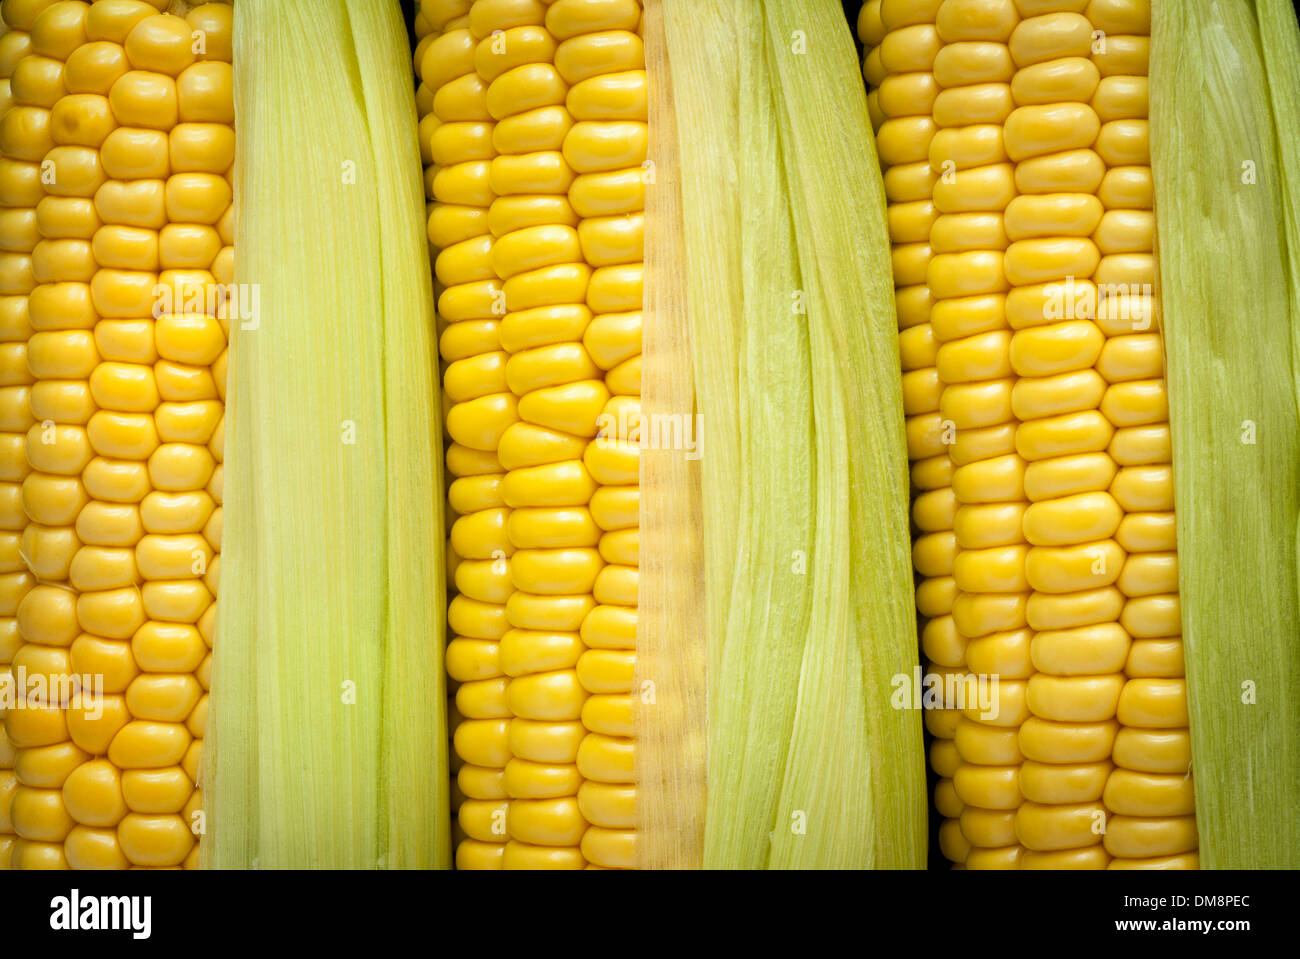 A closeup image of corn on the cob with husks. - Stock Image